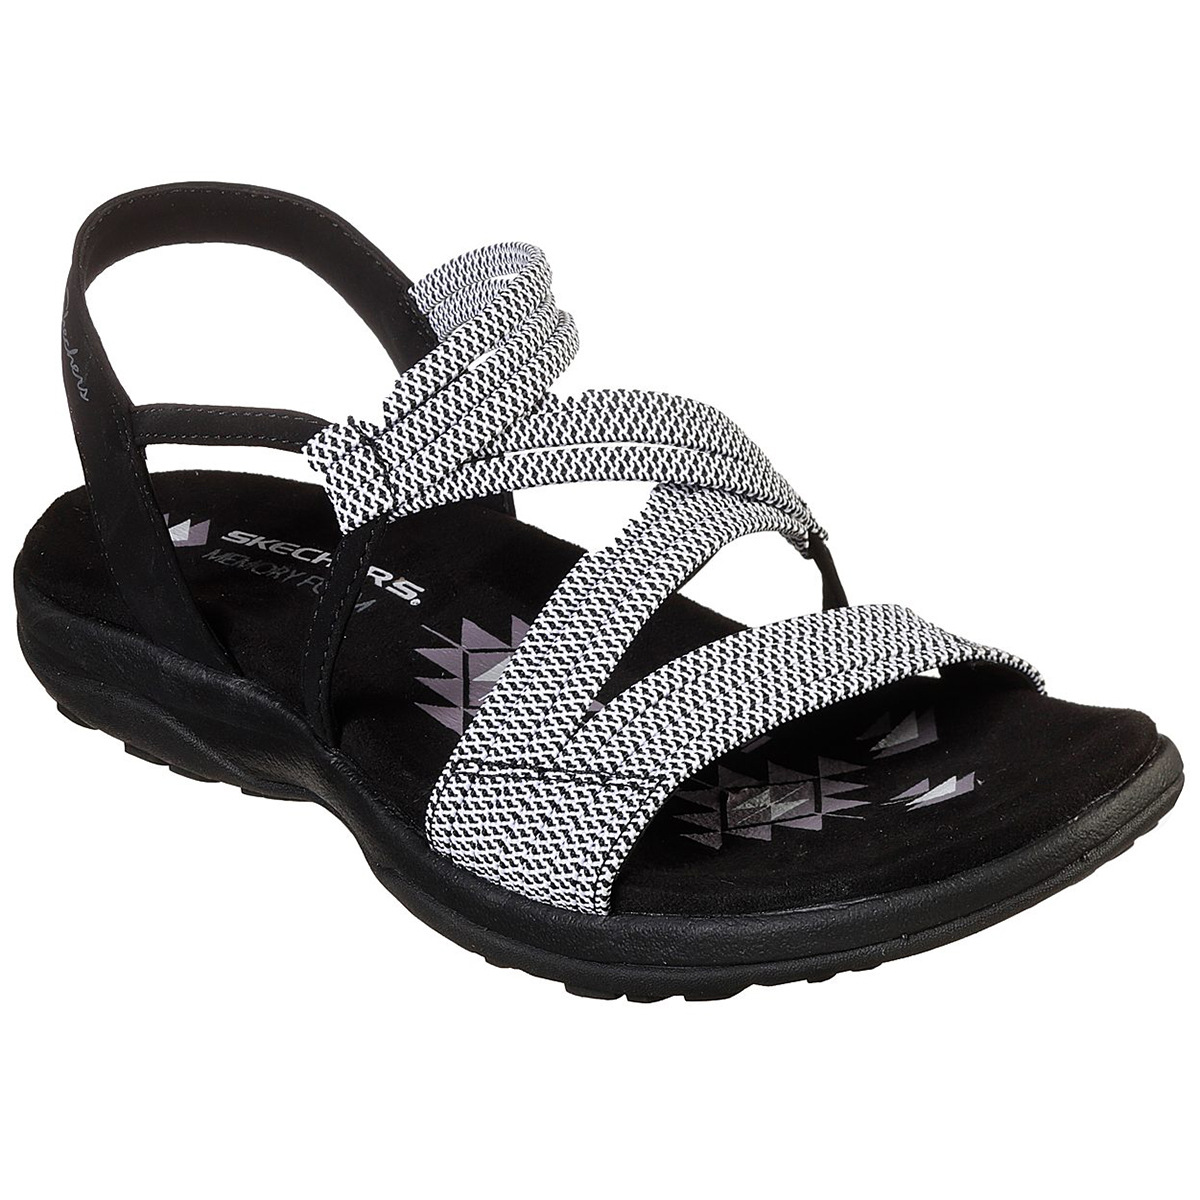 Skechers Women's Reggae Slim Z Sandal - Black, 10